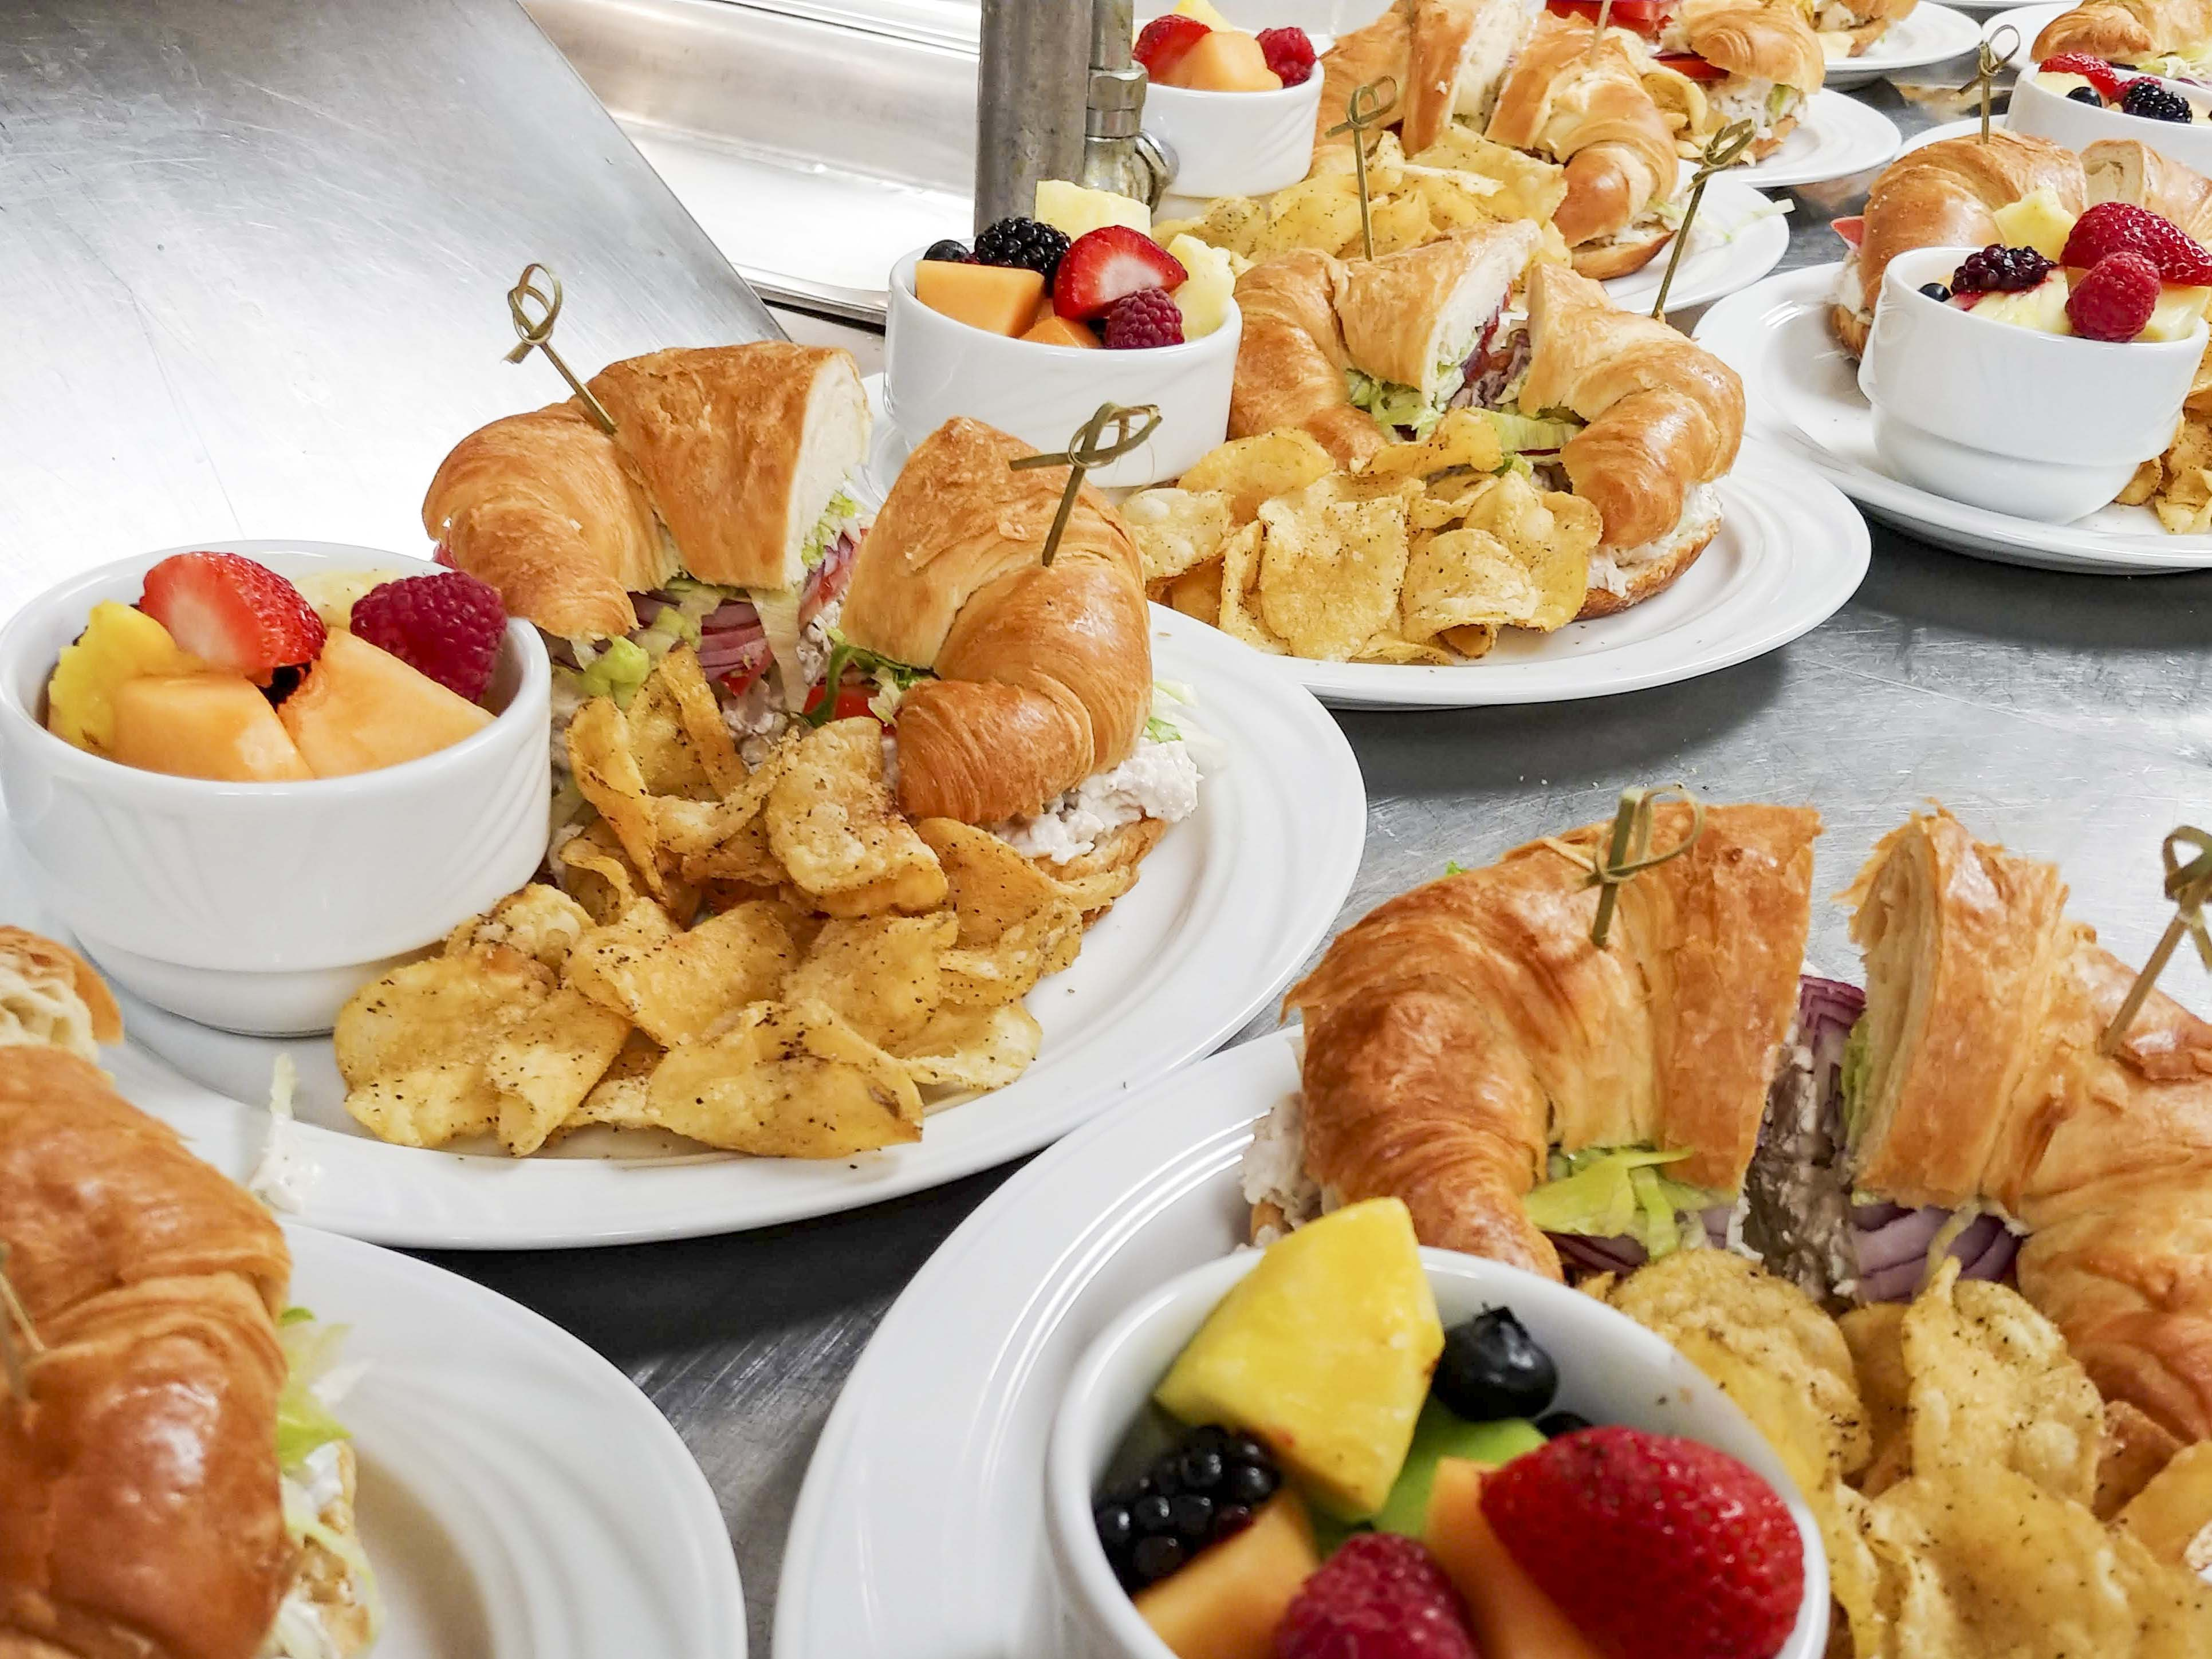 Close up photo of plates of sandwiches, fruit, and chips.